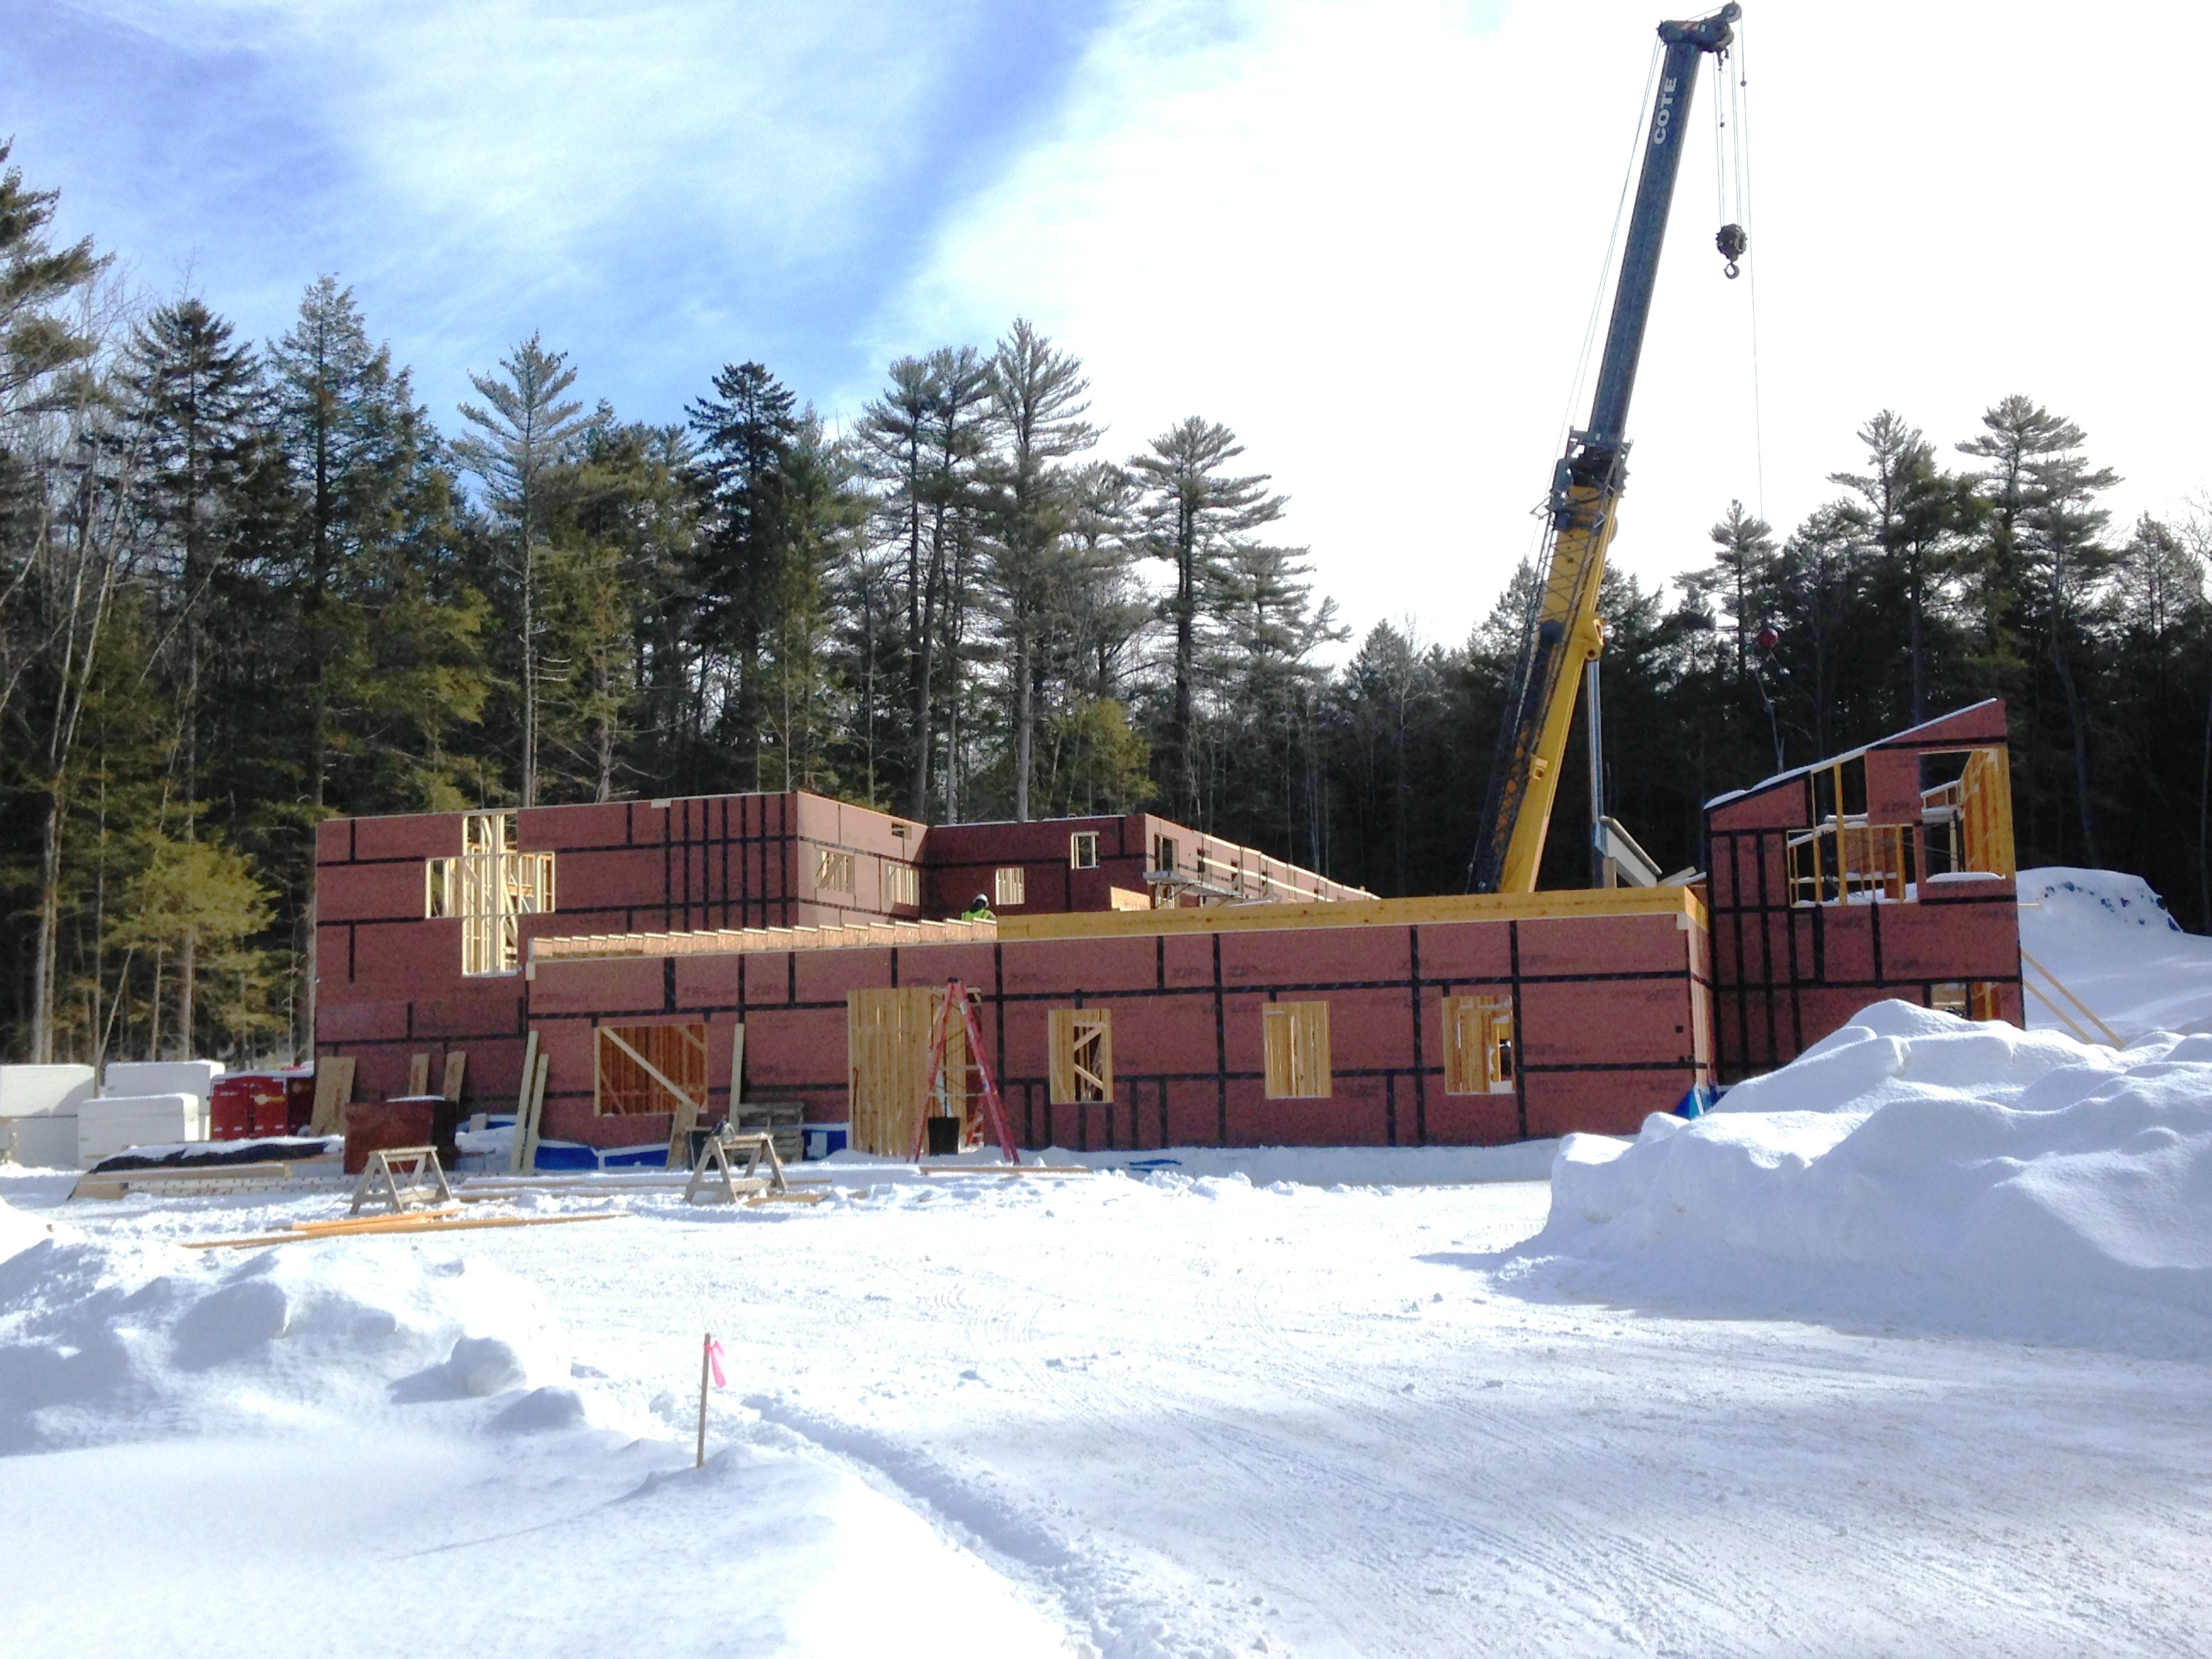 Crane for Panelization building